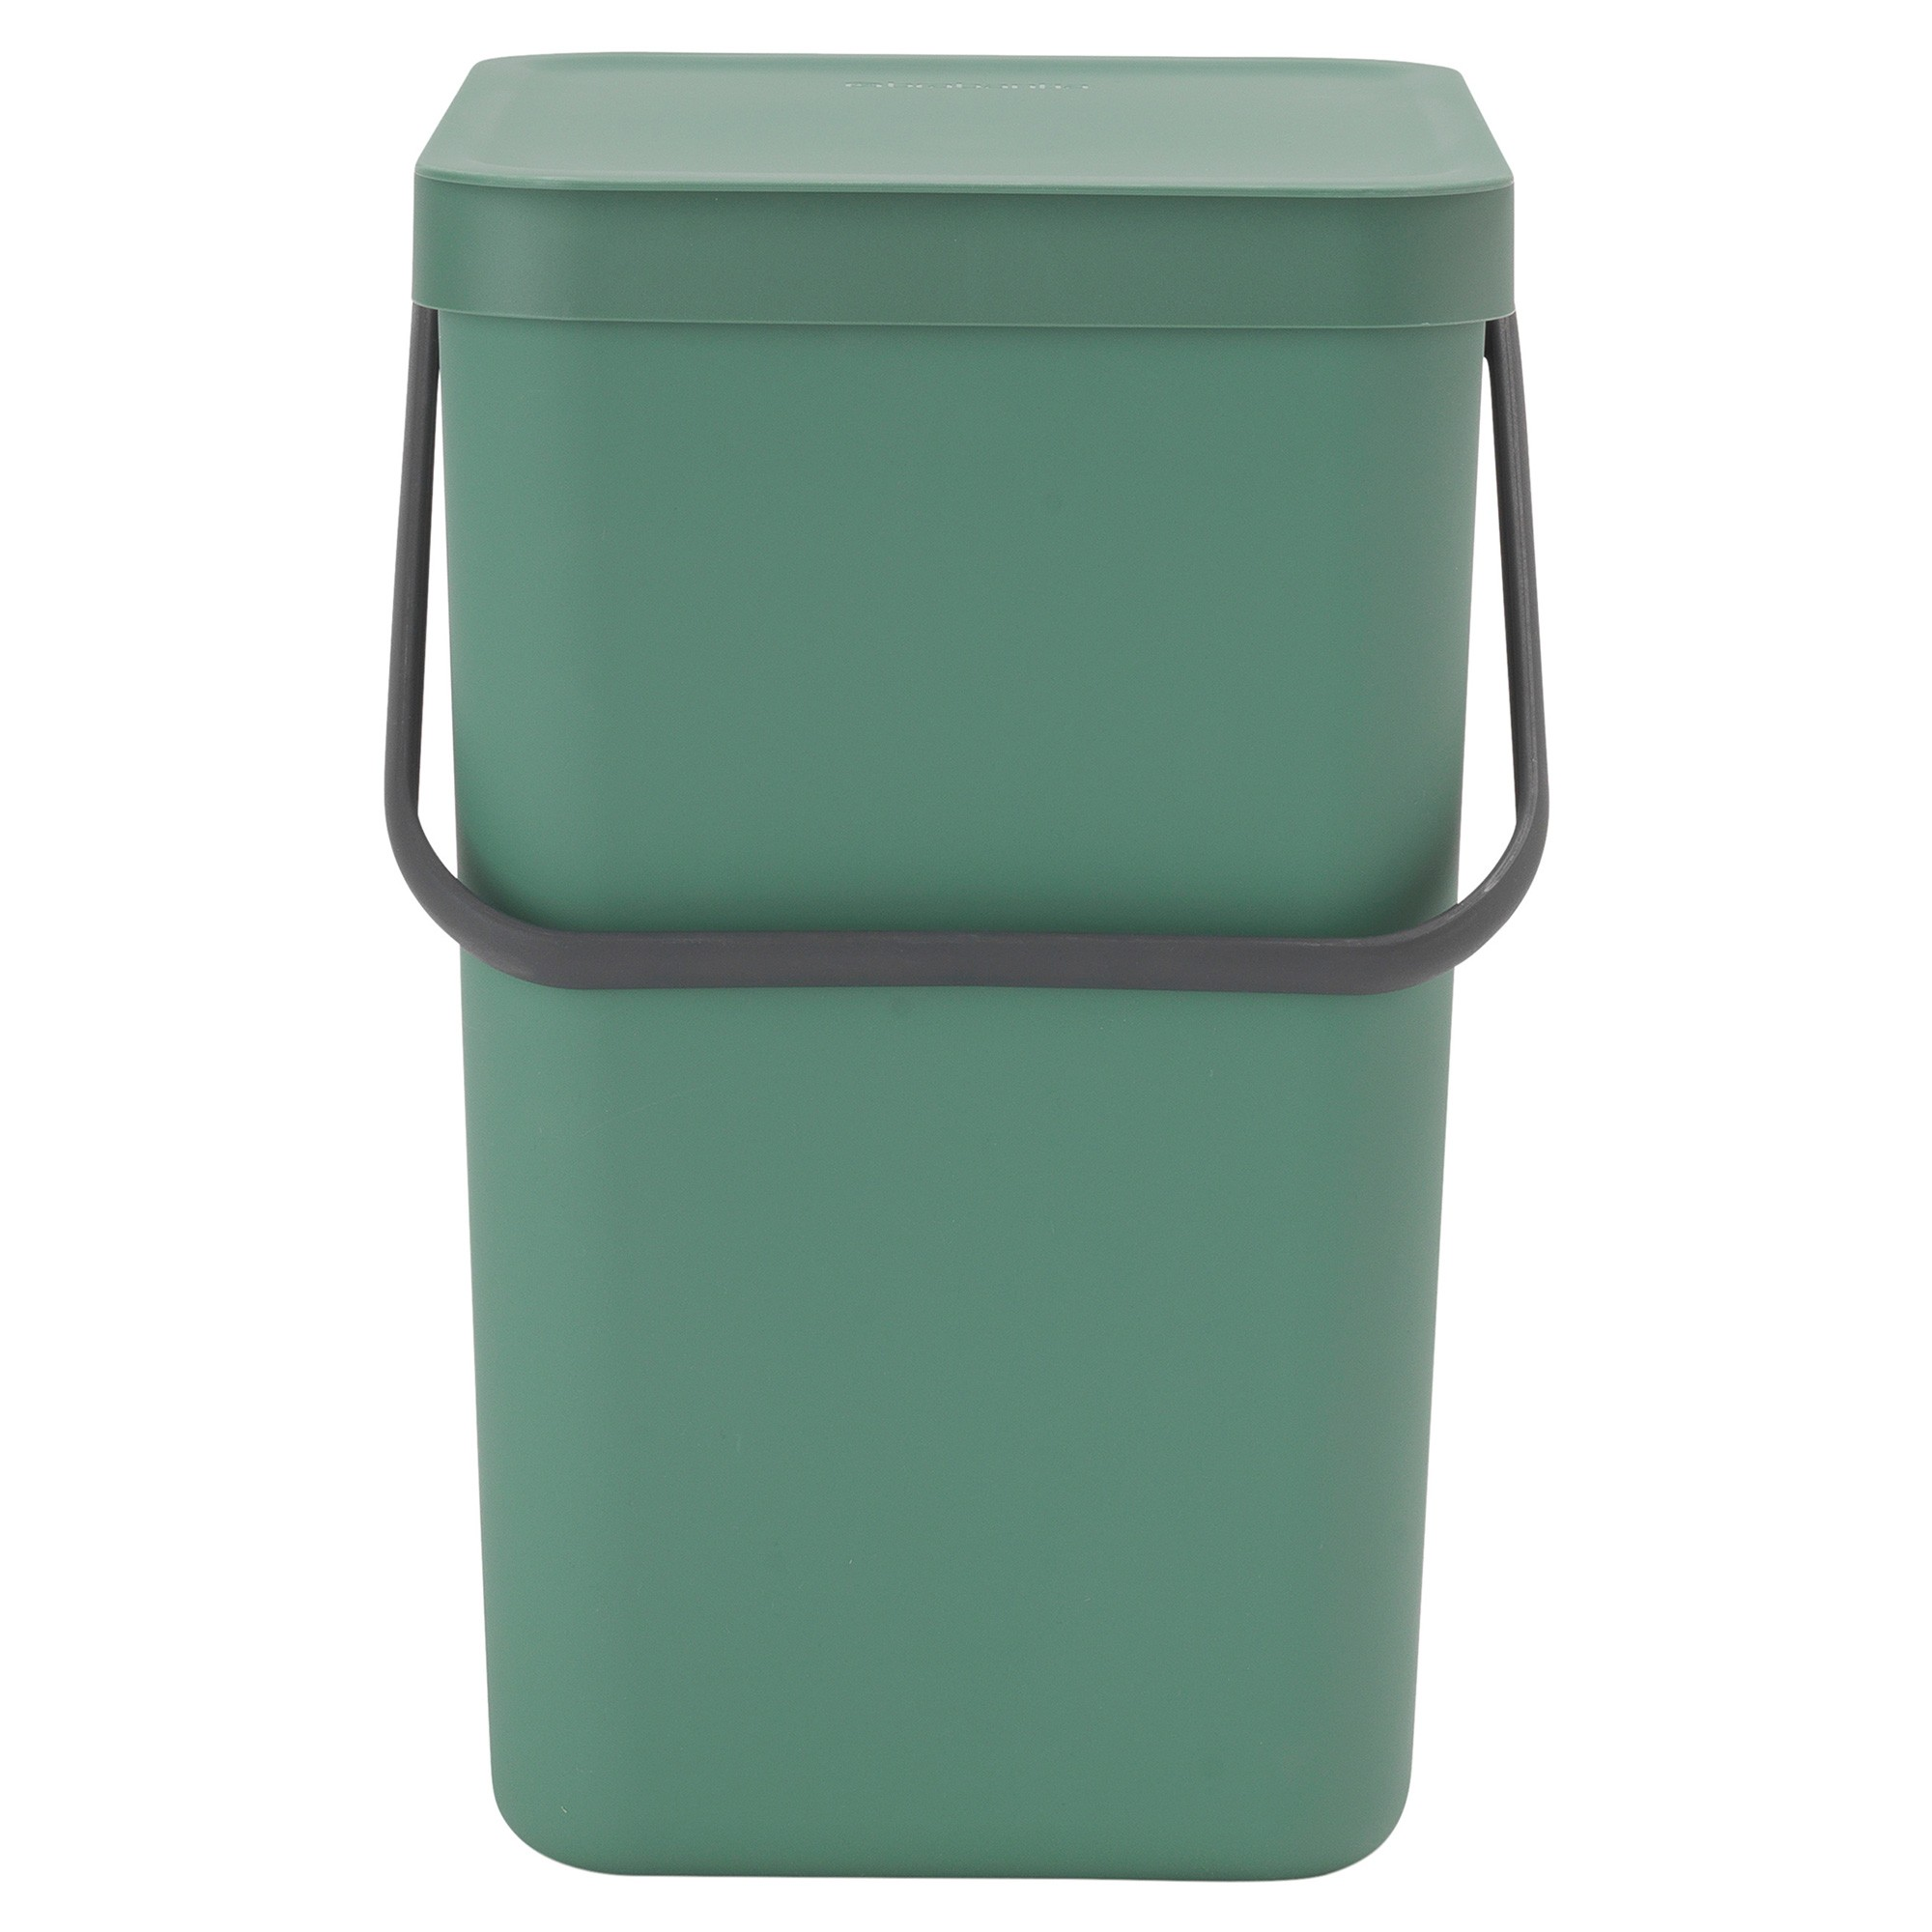 Brabantia Sort & Go Waste Bin, 25 Litre, Fir Green